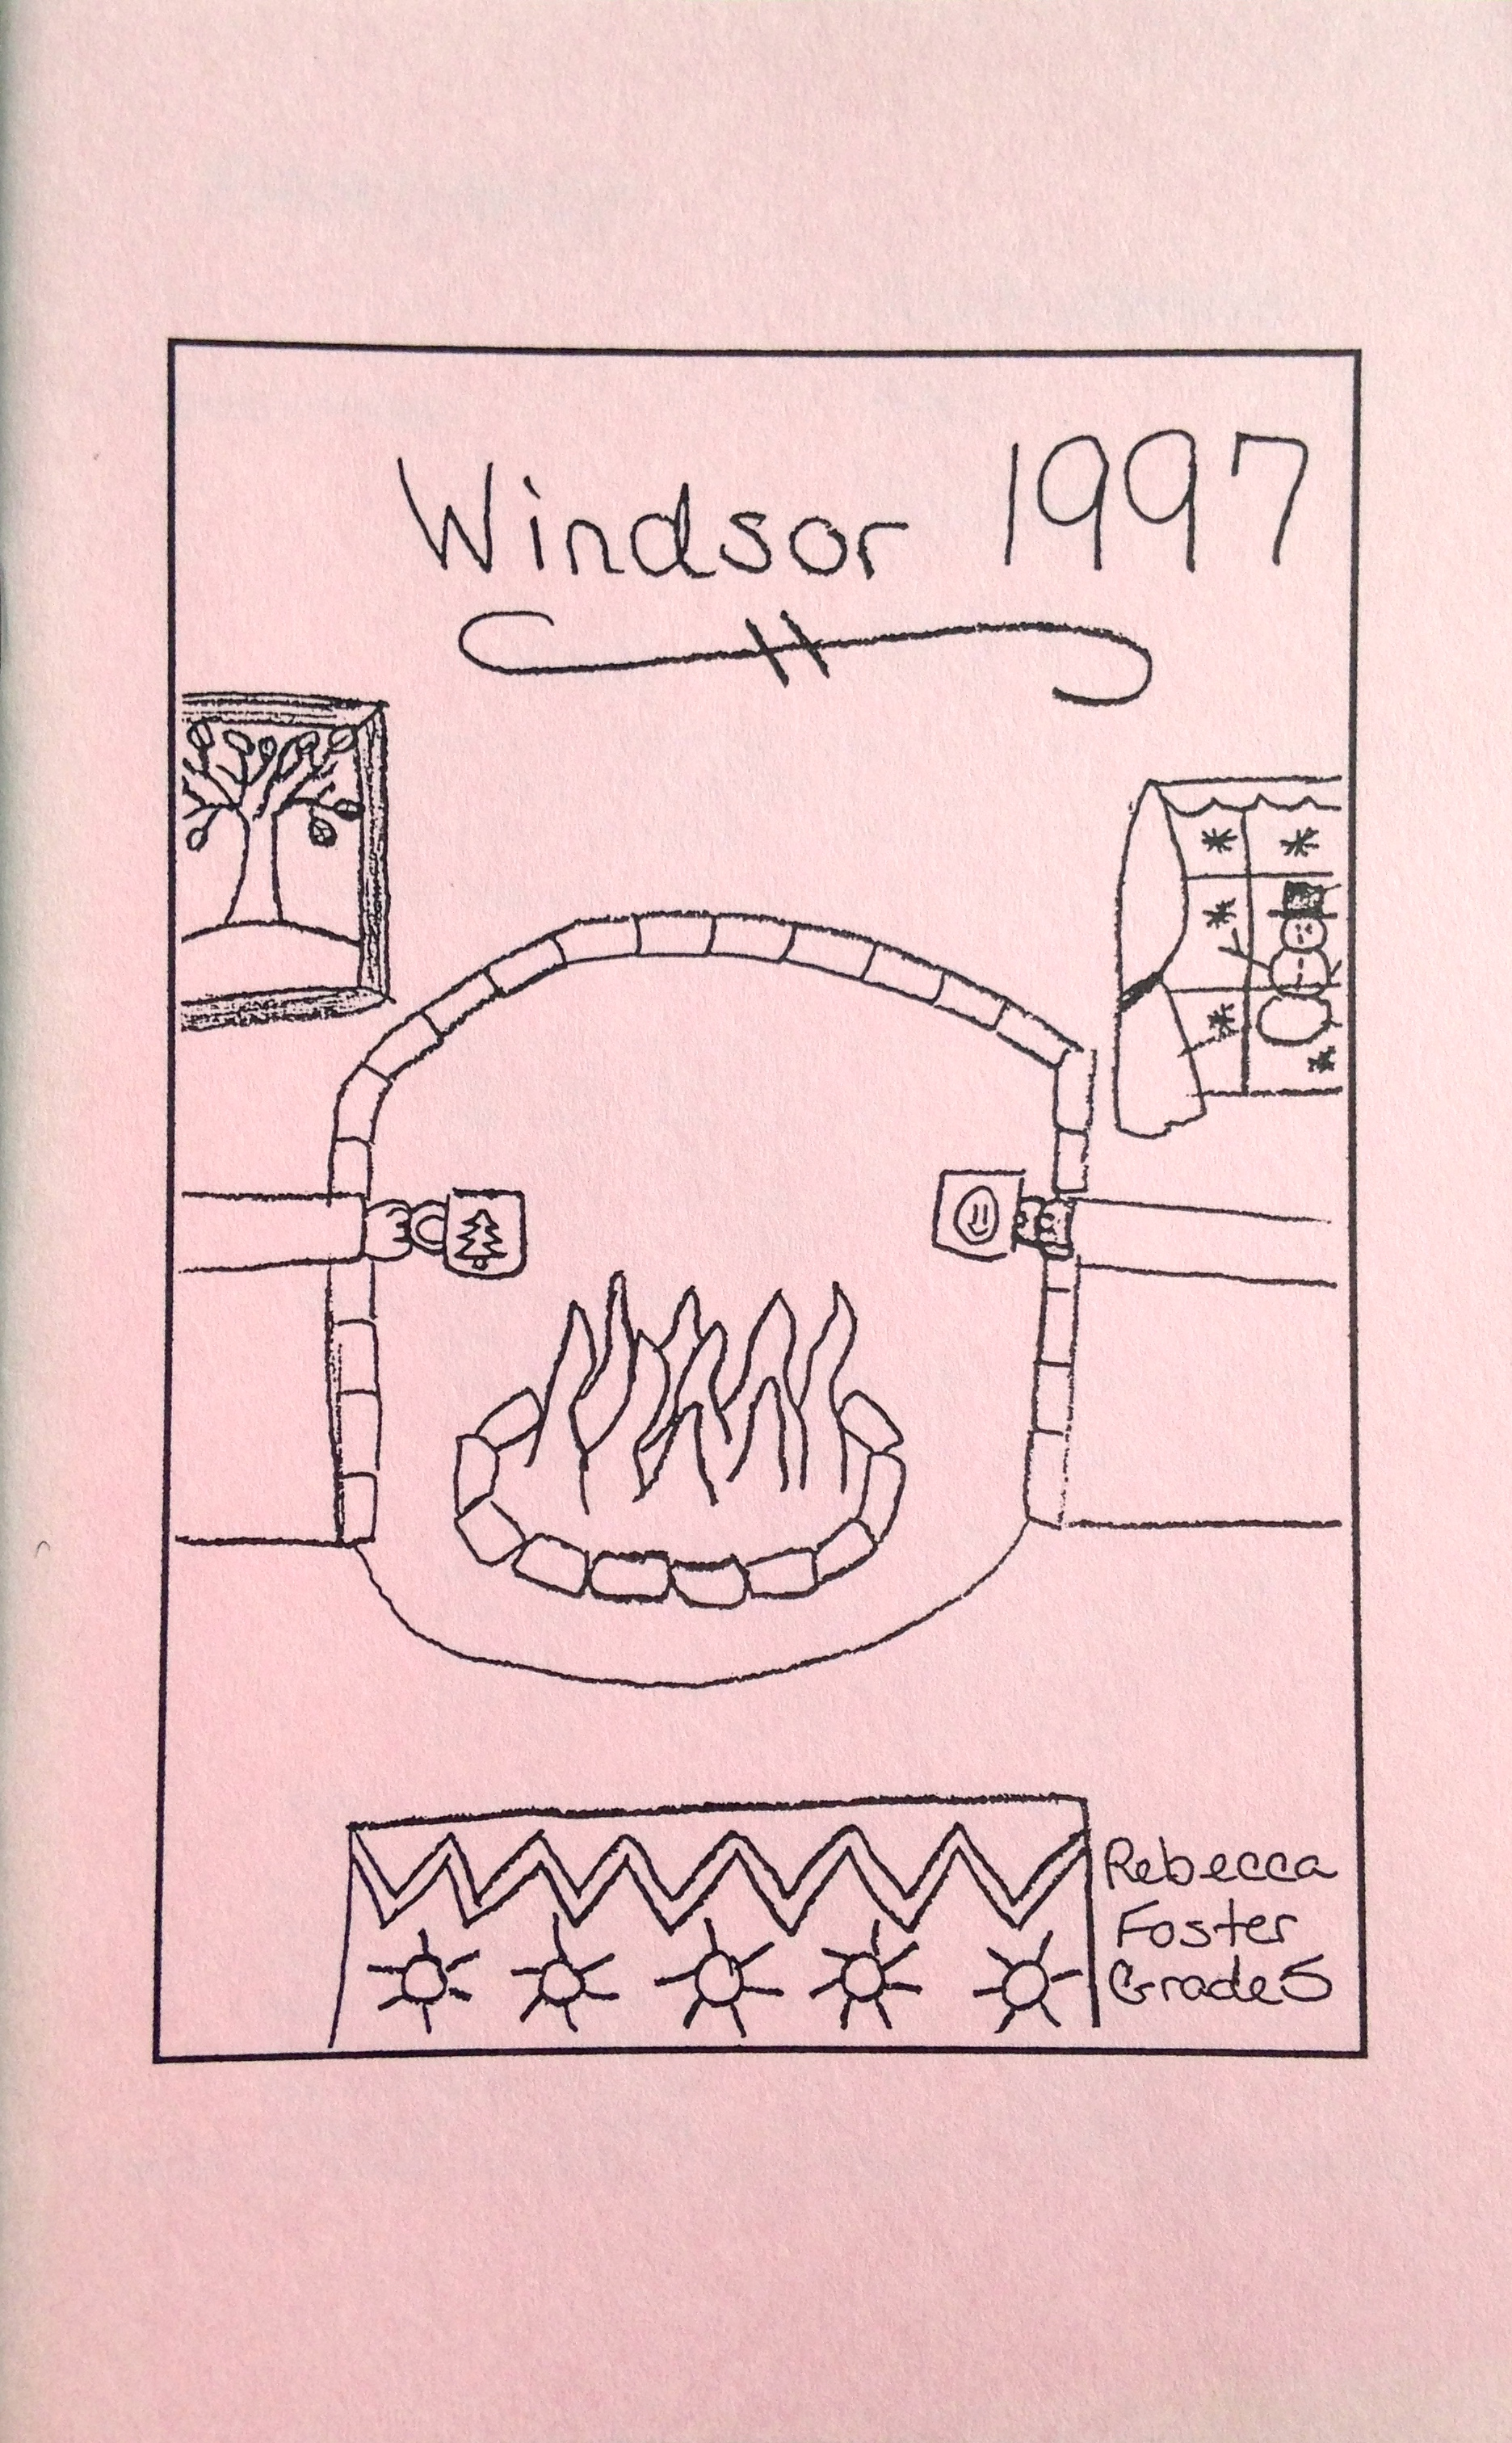 Cover art by Rebecca Foster (Grade 5)